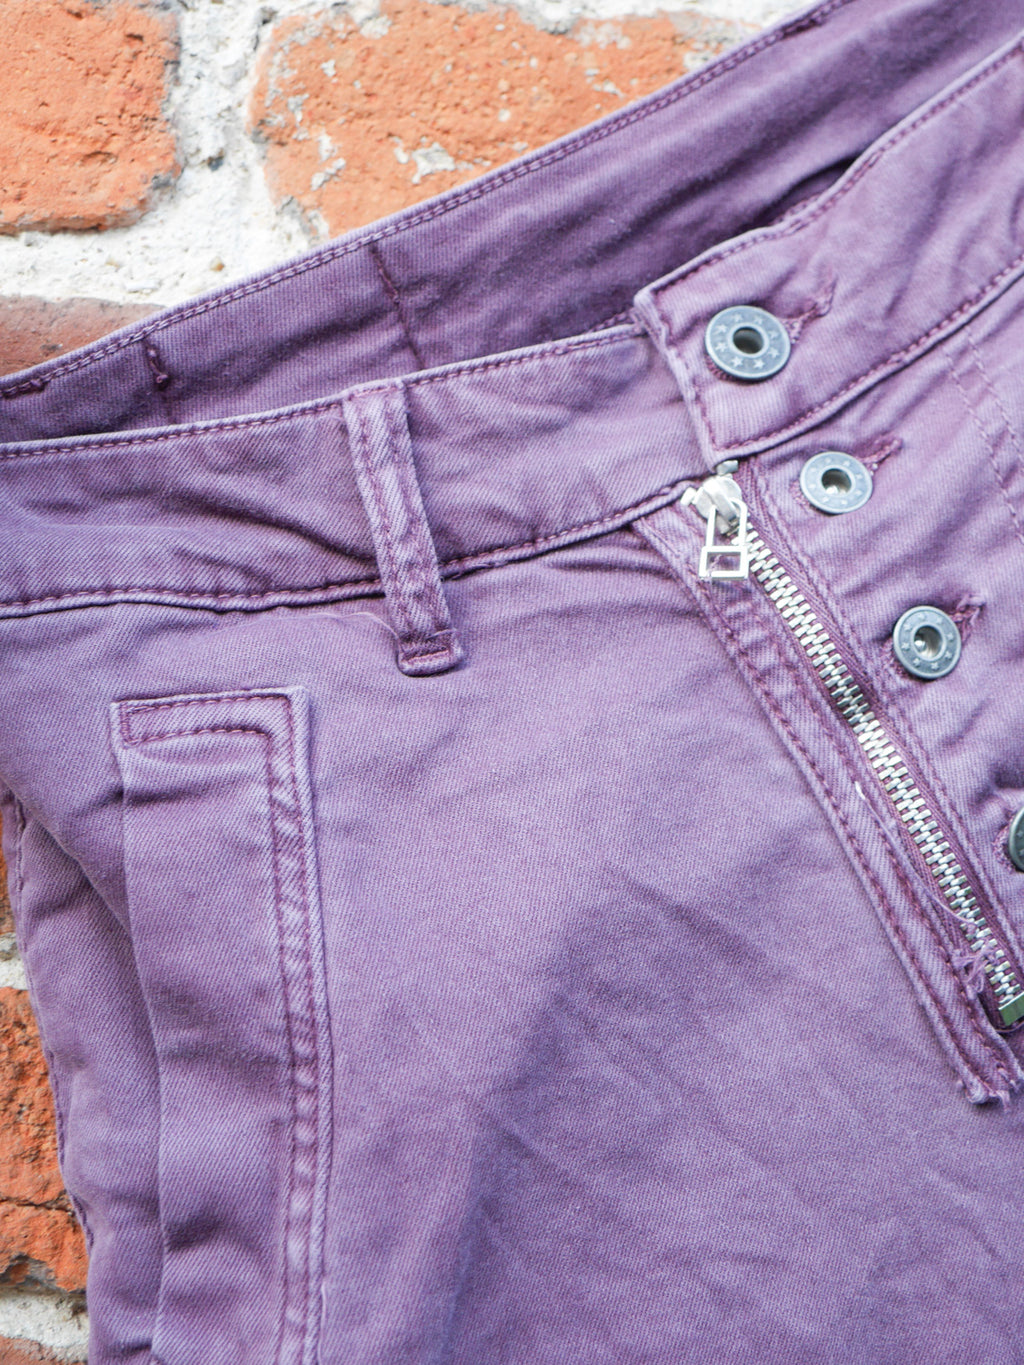 Melly & Co Plum 5 Button Hole Detail Jeans